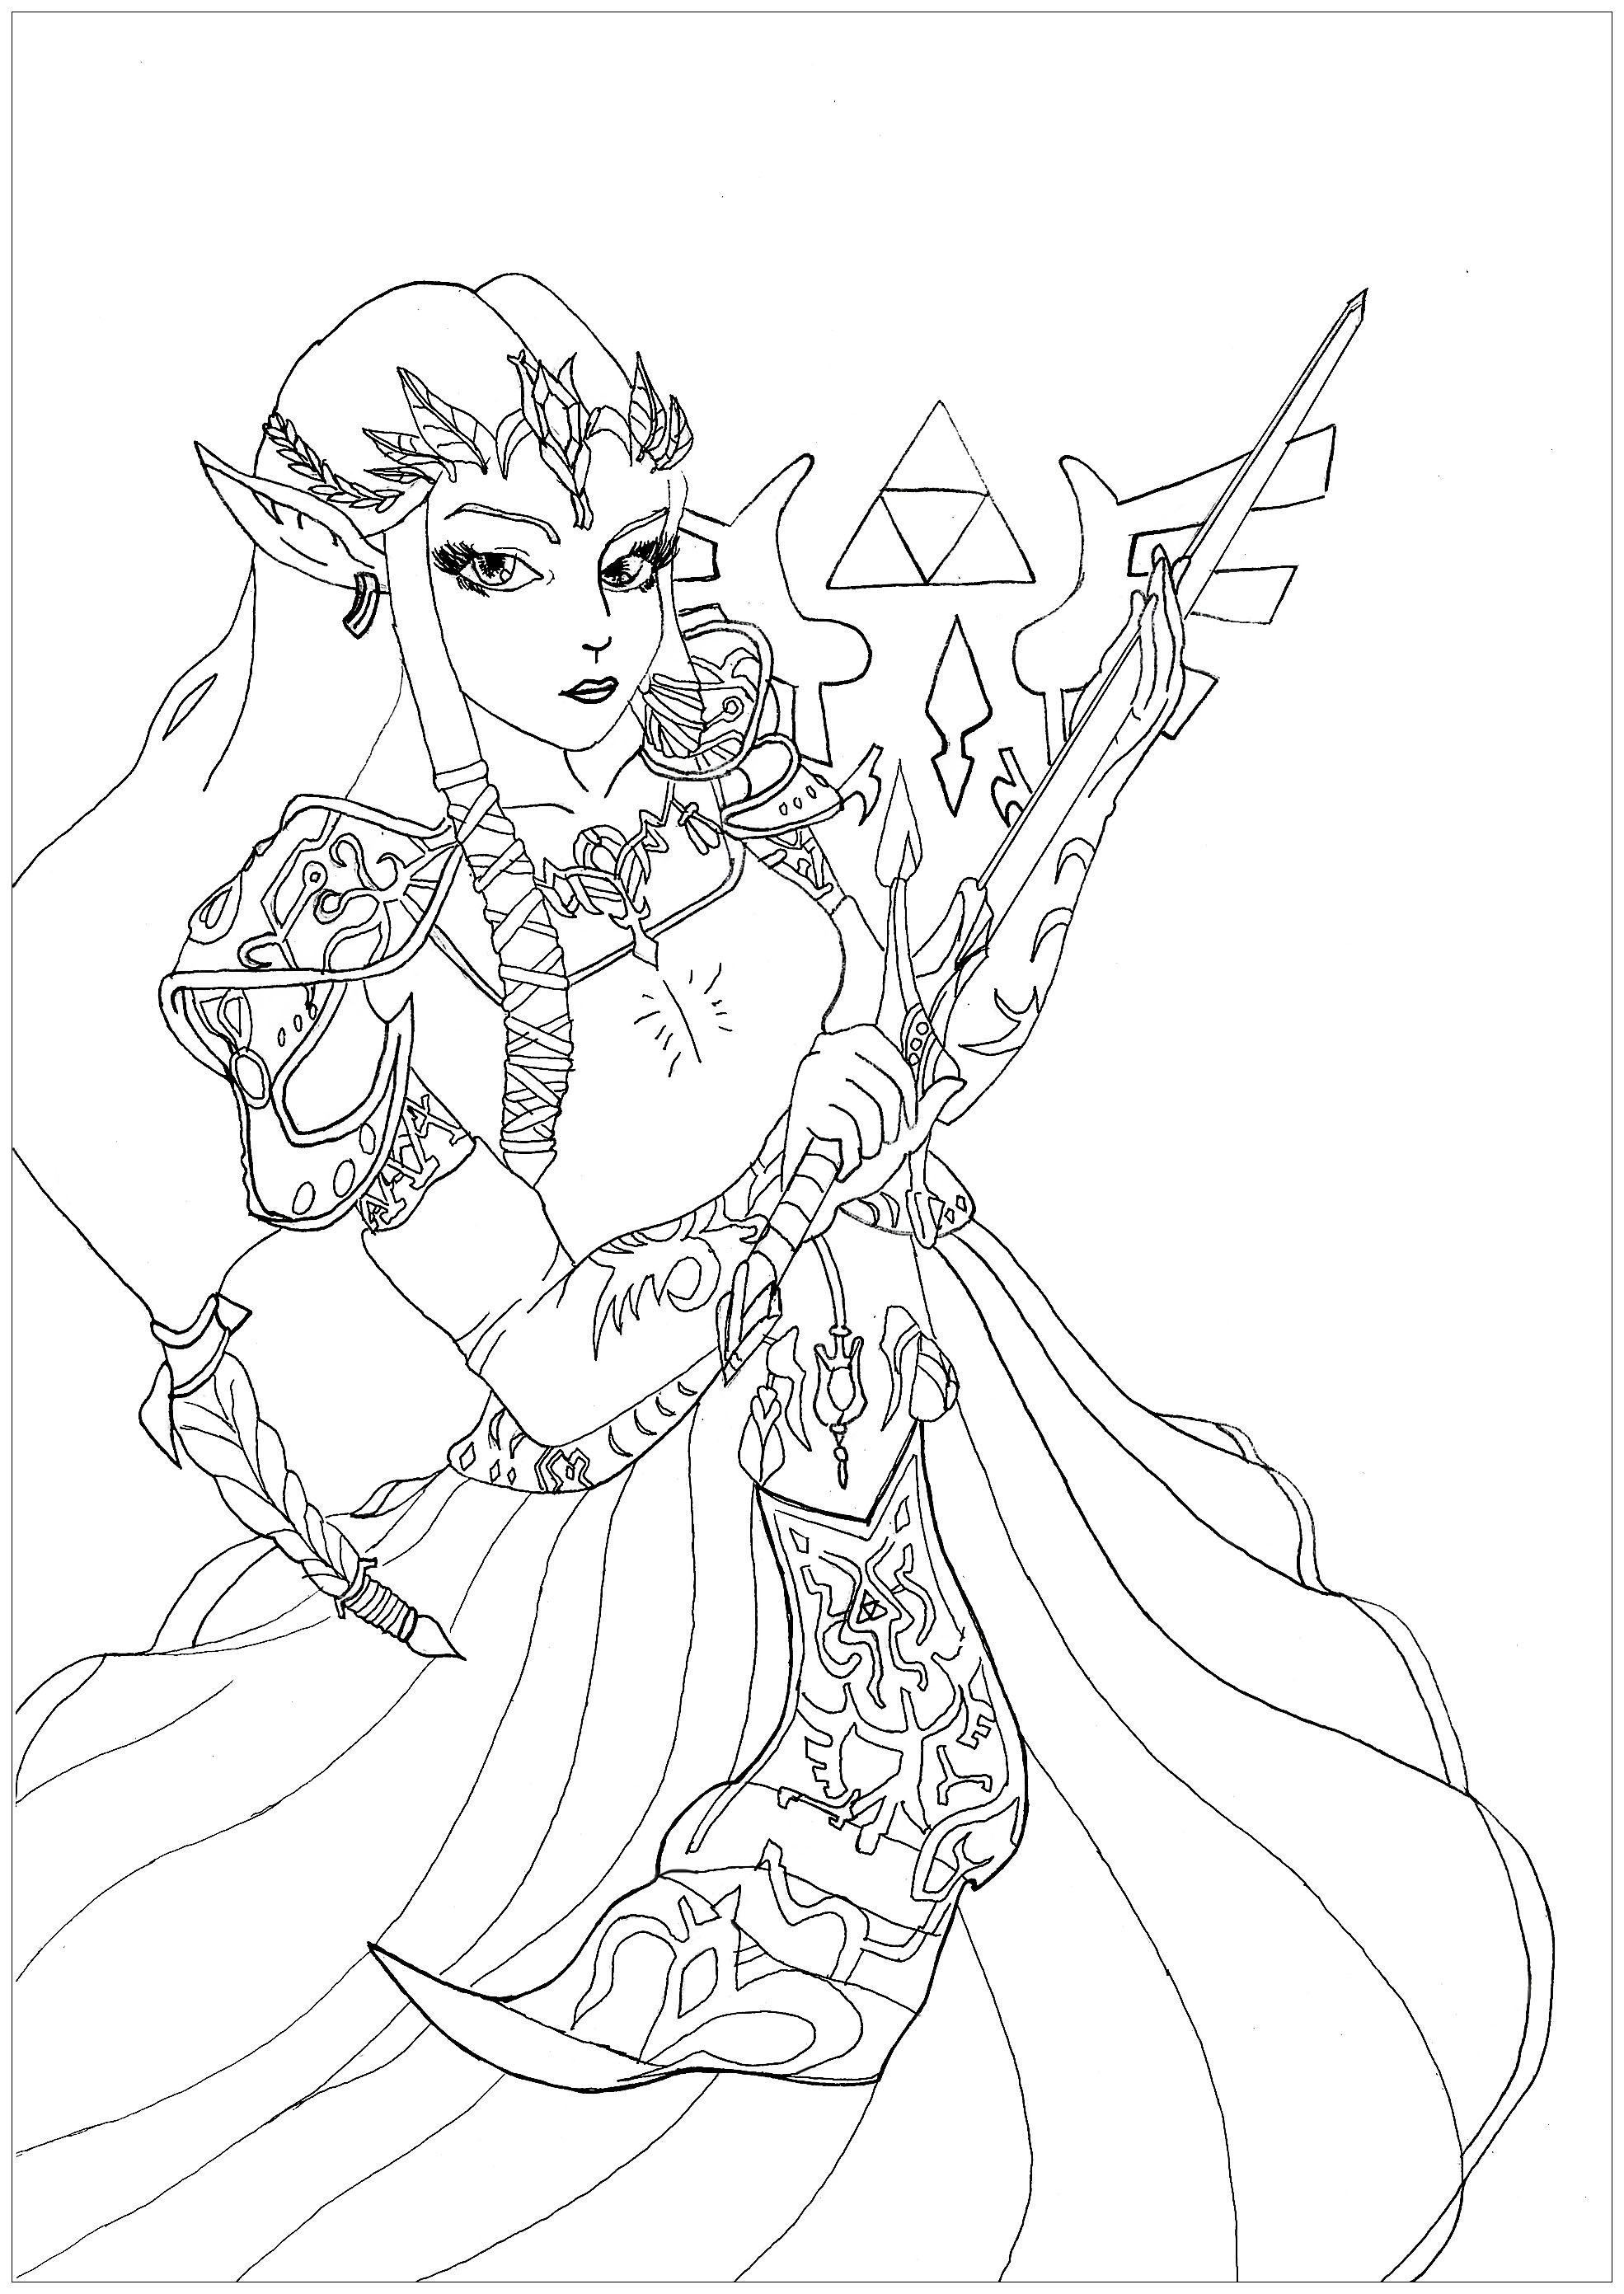 Coloring Page Of The Princess Zelda From The Video Game Twilight